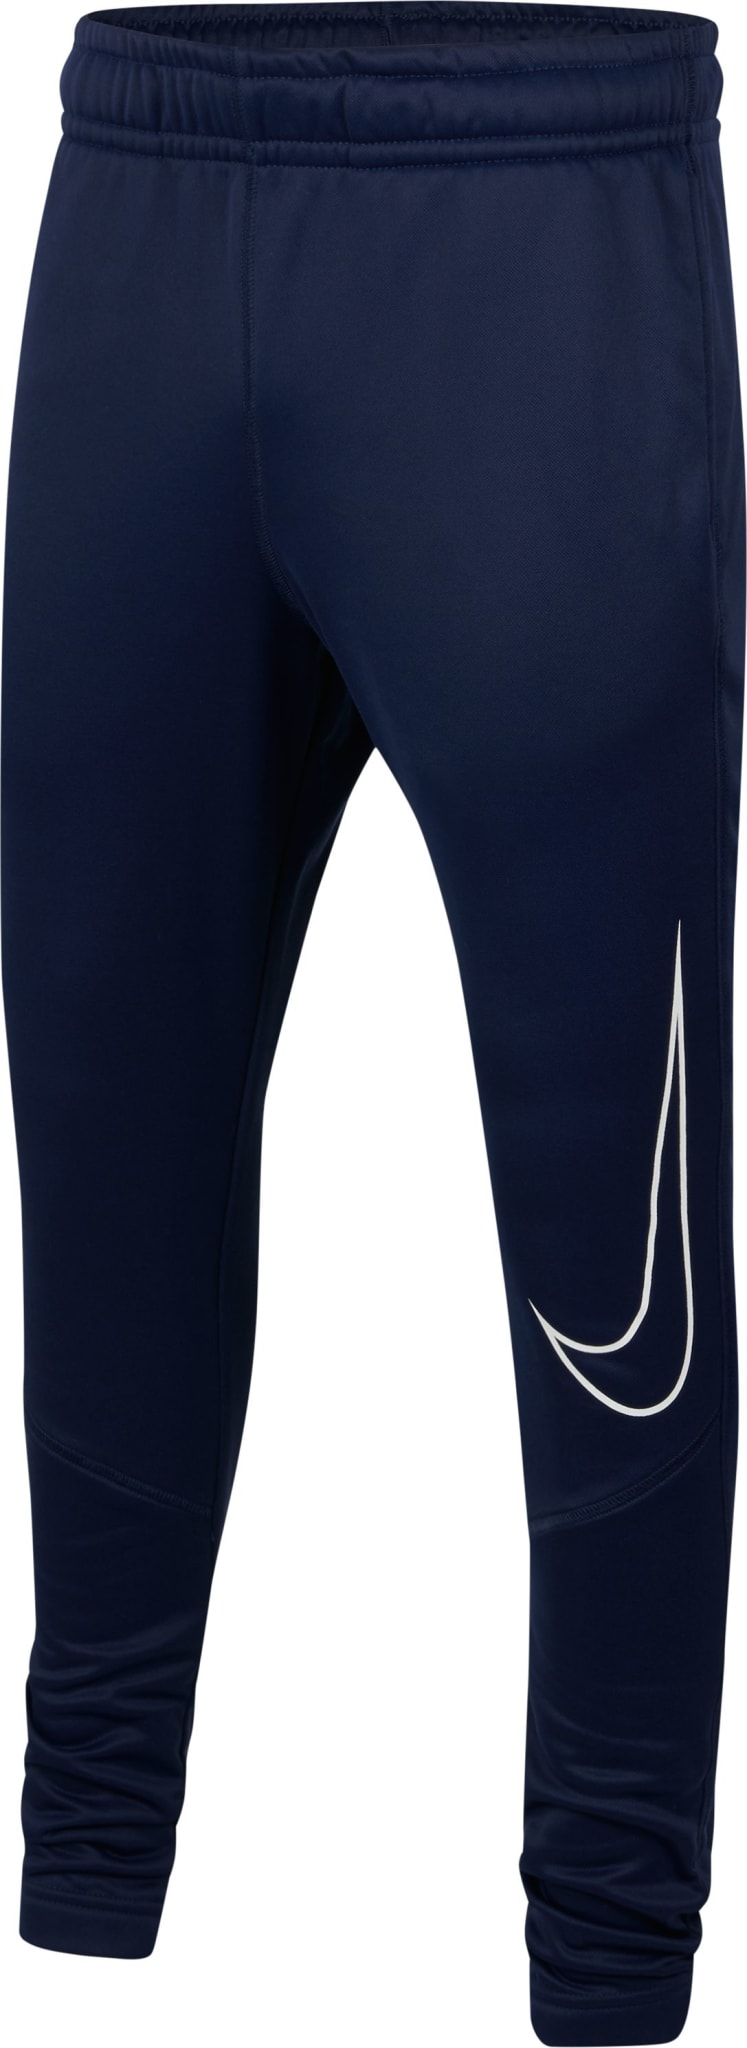 Nike Therma Big Kids' (Boys') Training Pants